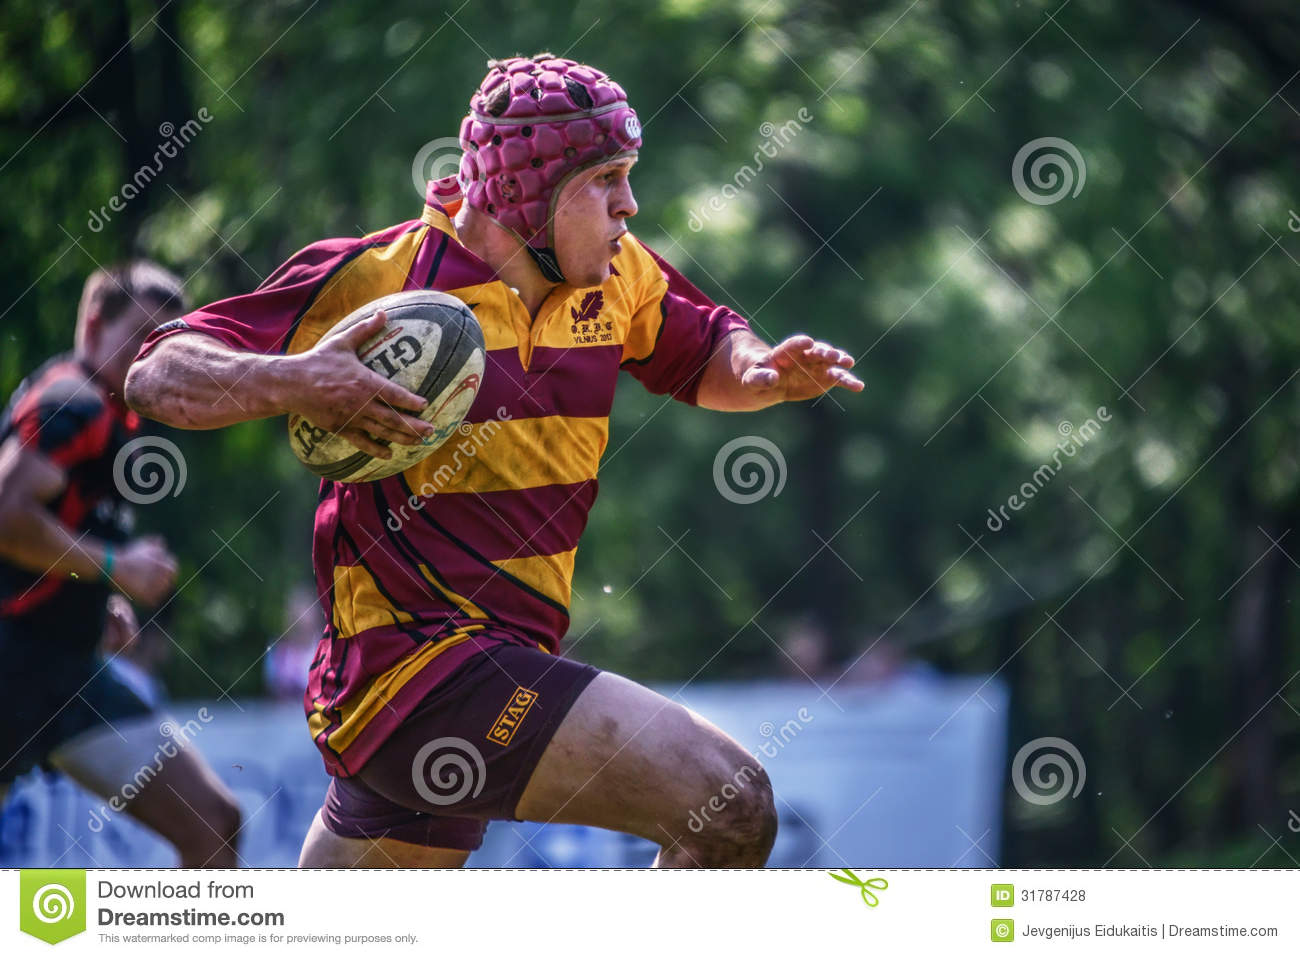 rugby player essay To determine the incidence of concussion in high school rugby players and compare the findings with the relevant published literature design and setting: prospective data collection in one us high school rugby program.